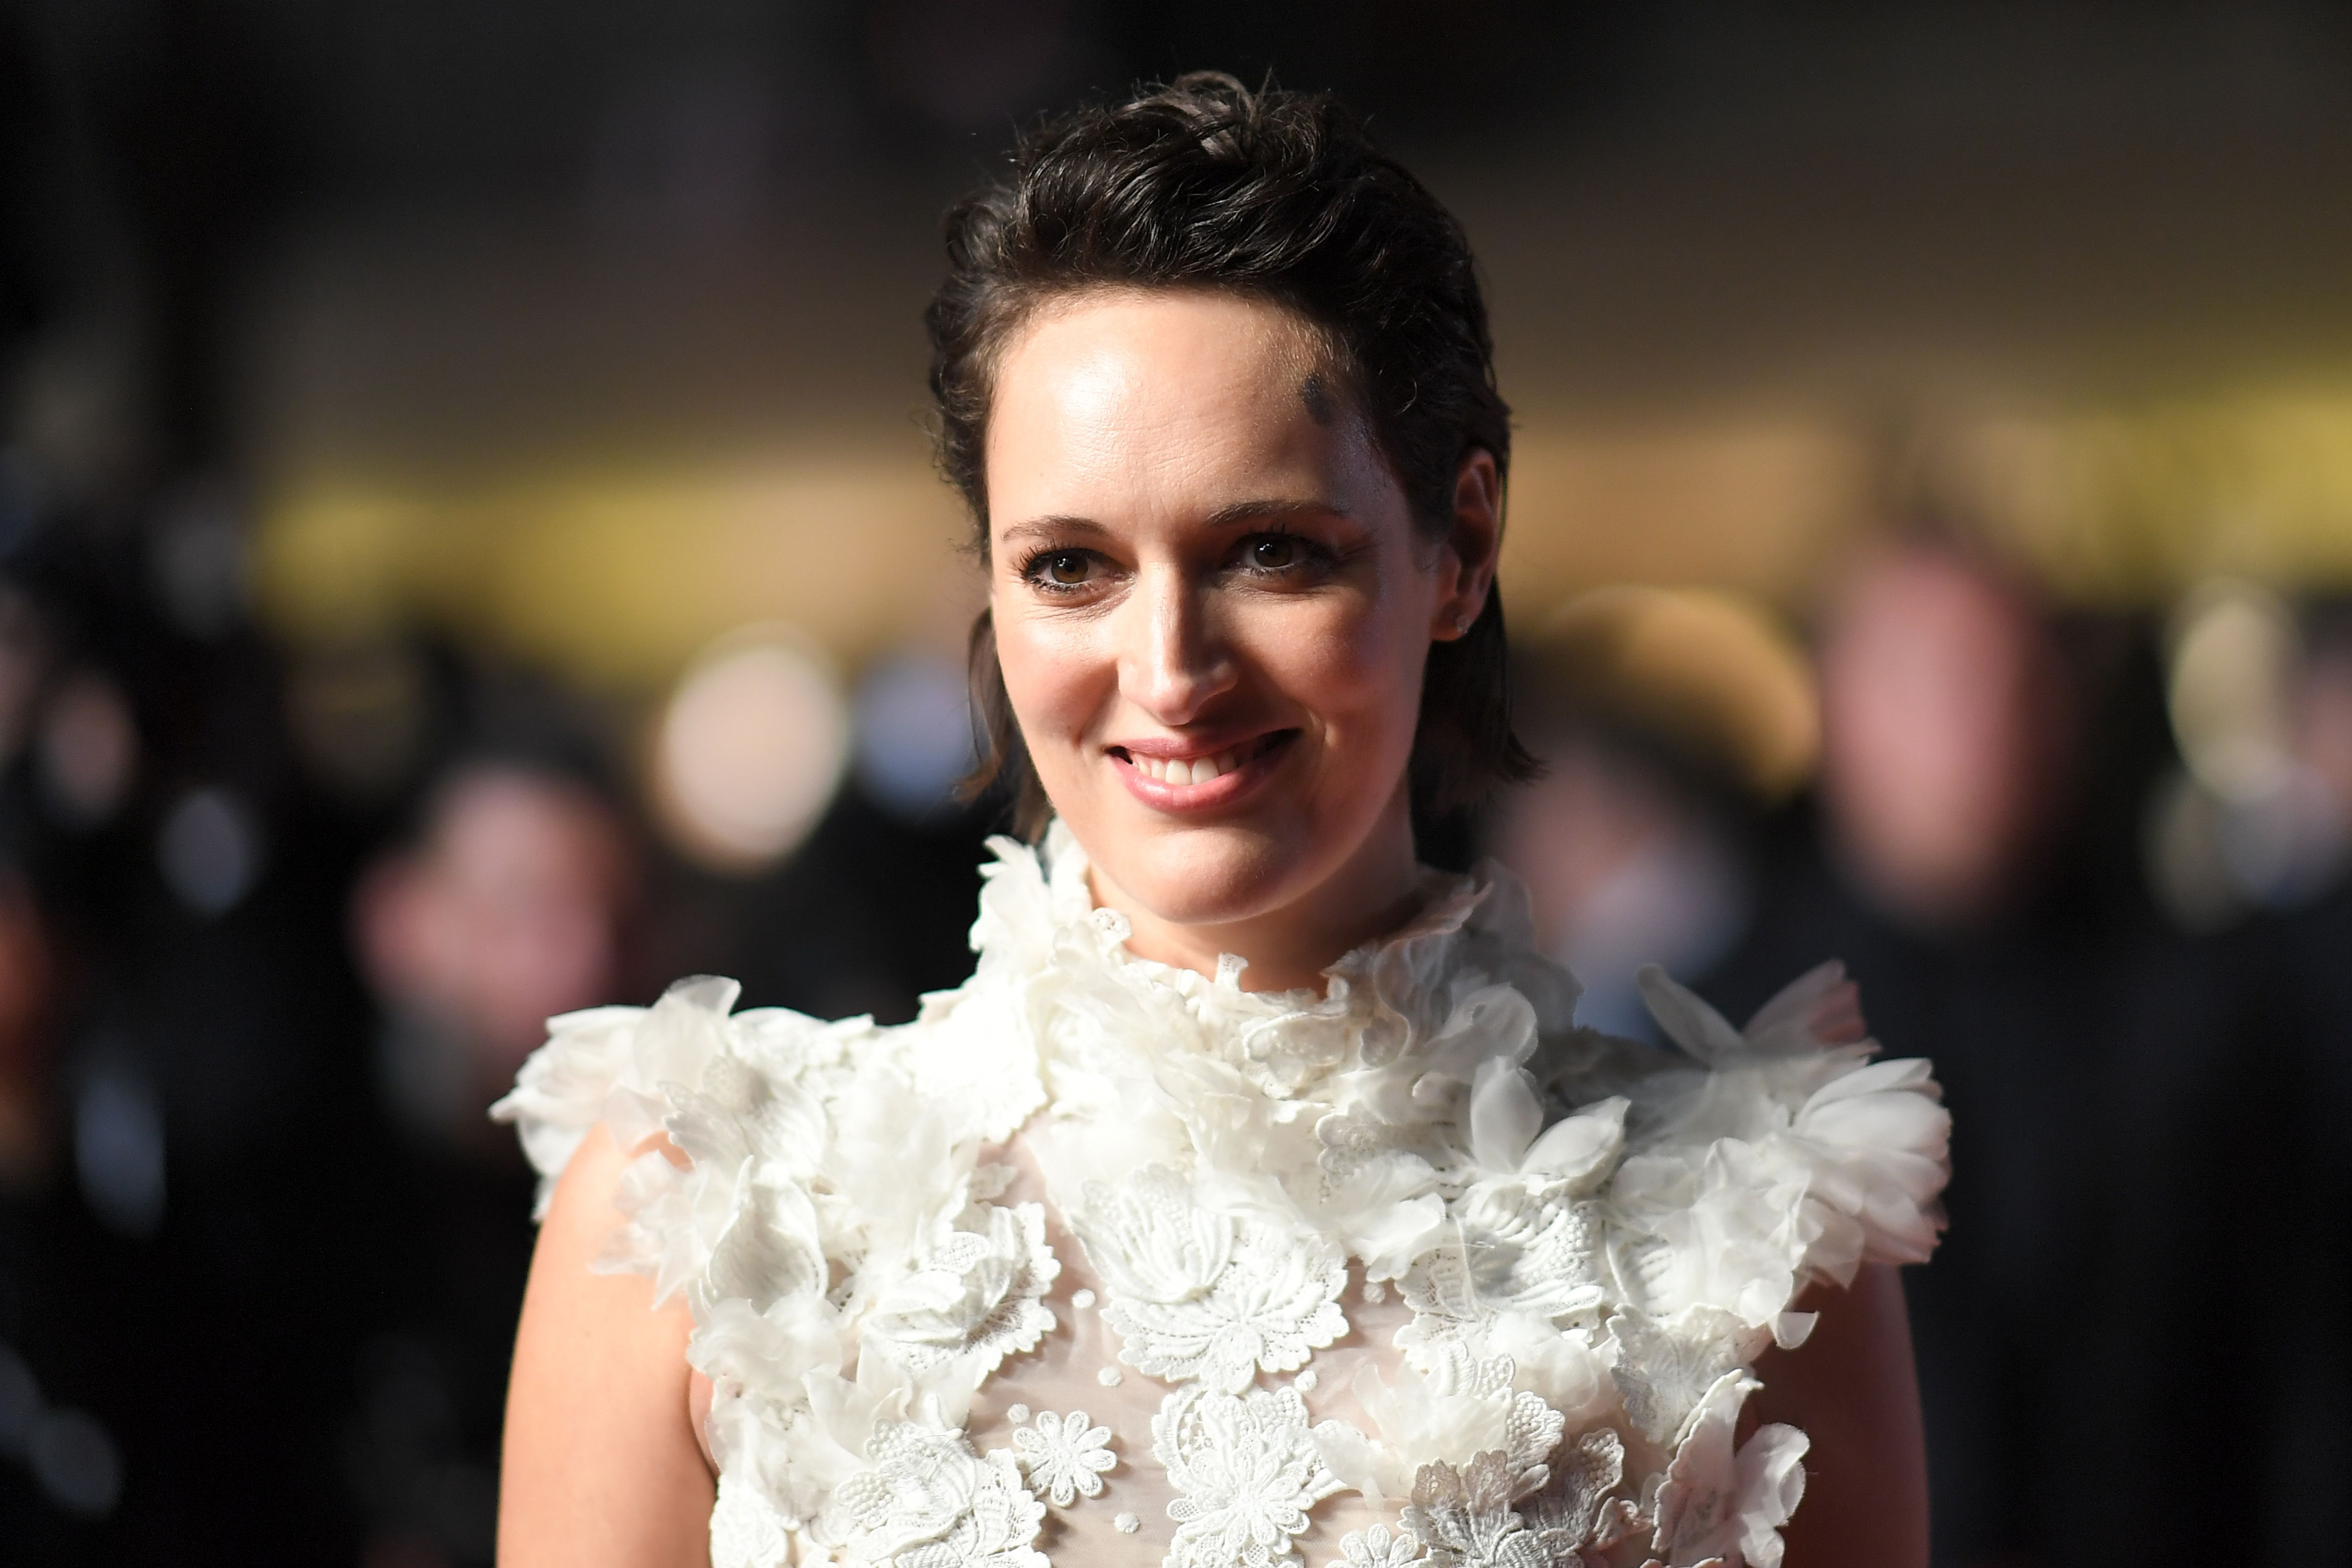 """Phoebe Waller-Bridge says being """"boring"""" helps her deal with fame"""